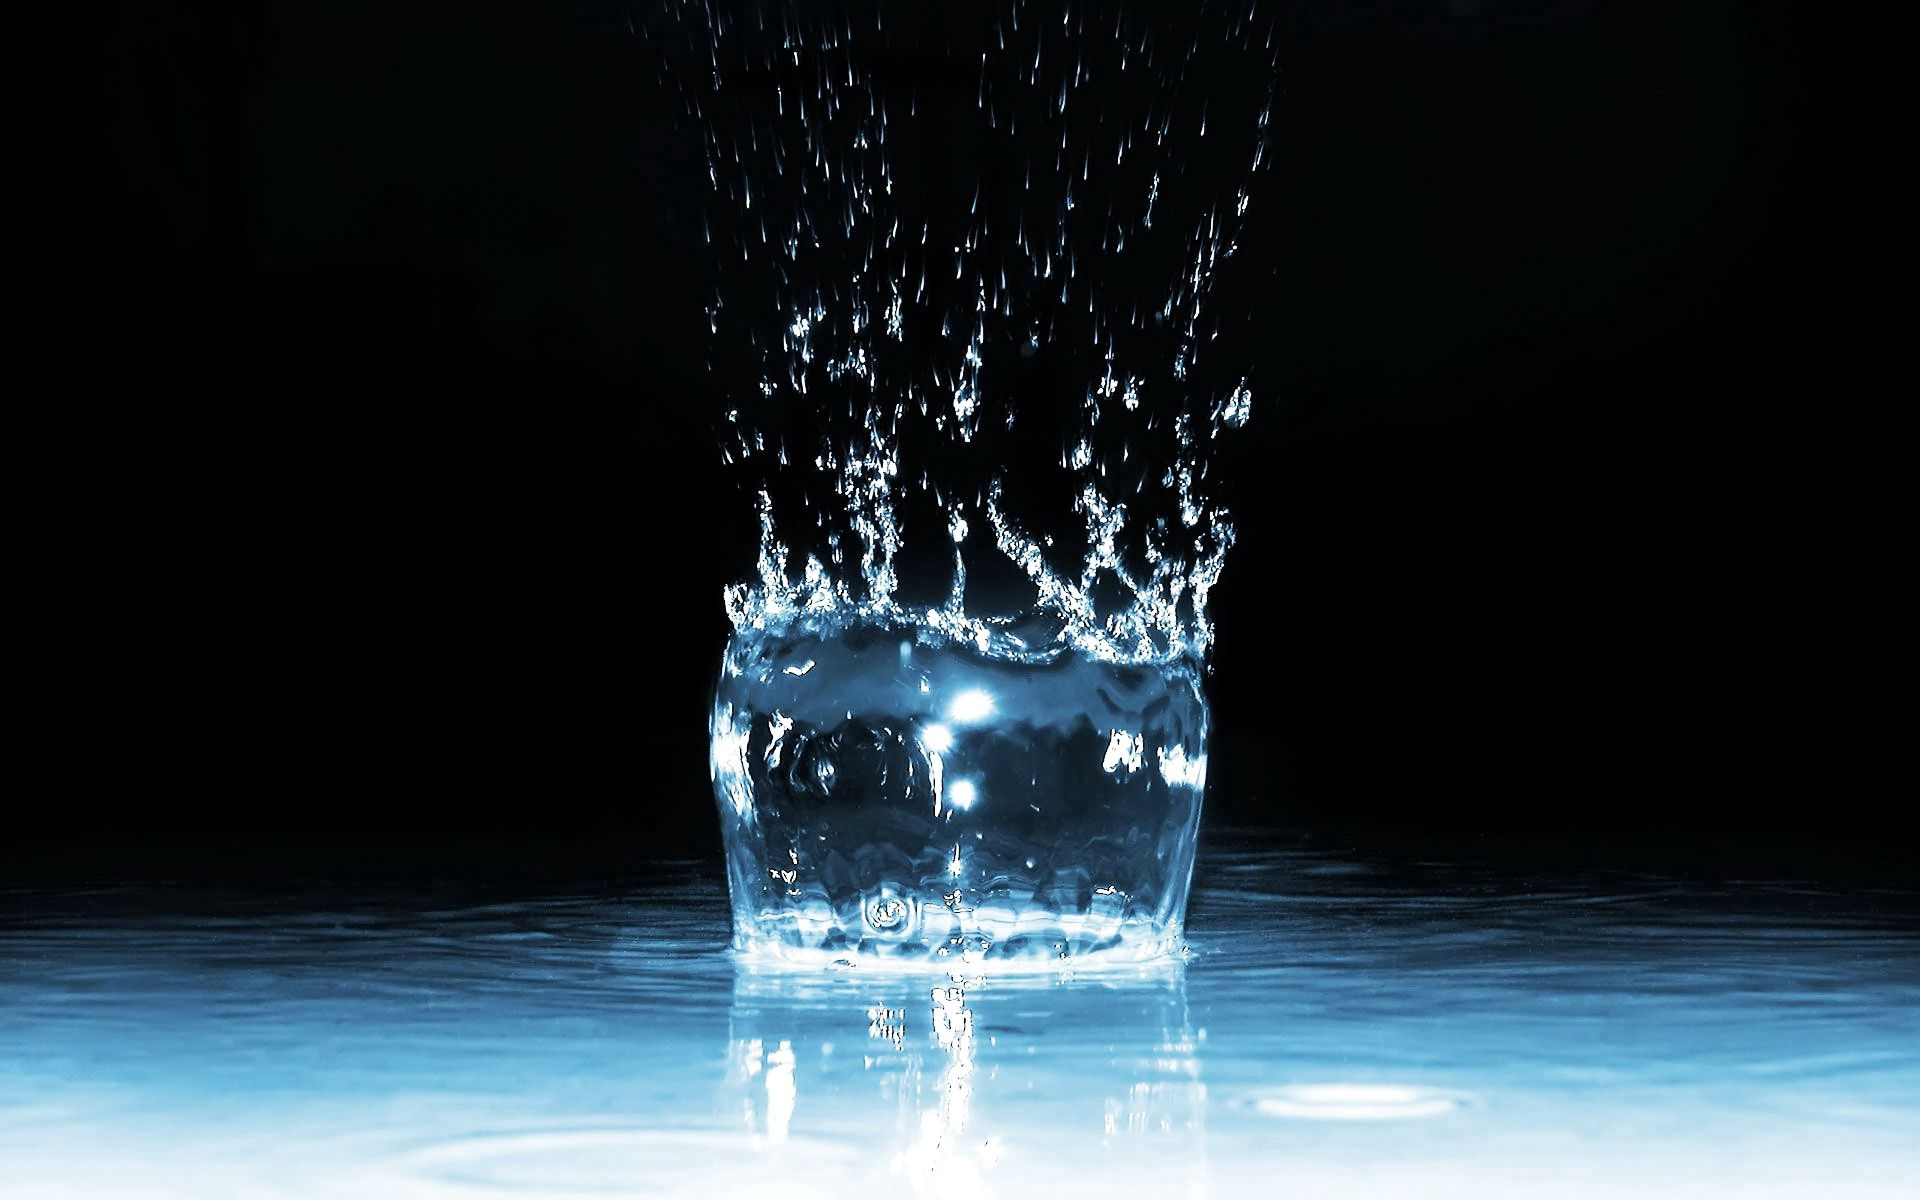 157020 download wallpaper Water, 3D, Spray, Liquid screensavers and pictures for free